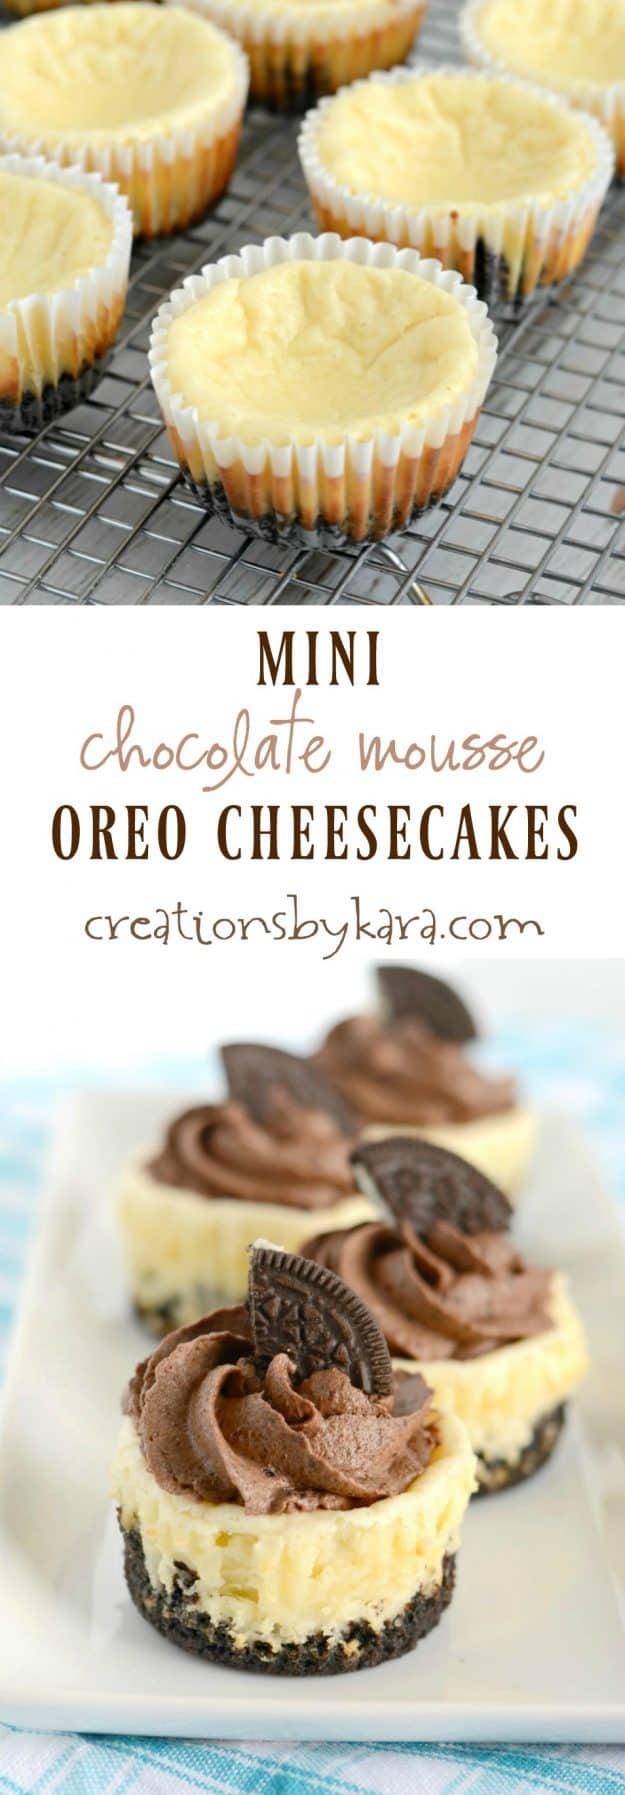 Recipe for Cheesecake topped with Oreo Chocolate Mousse.